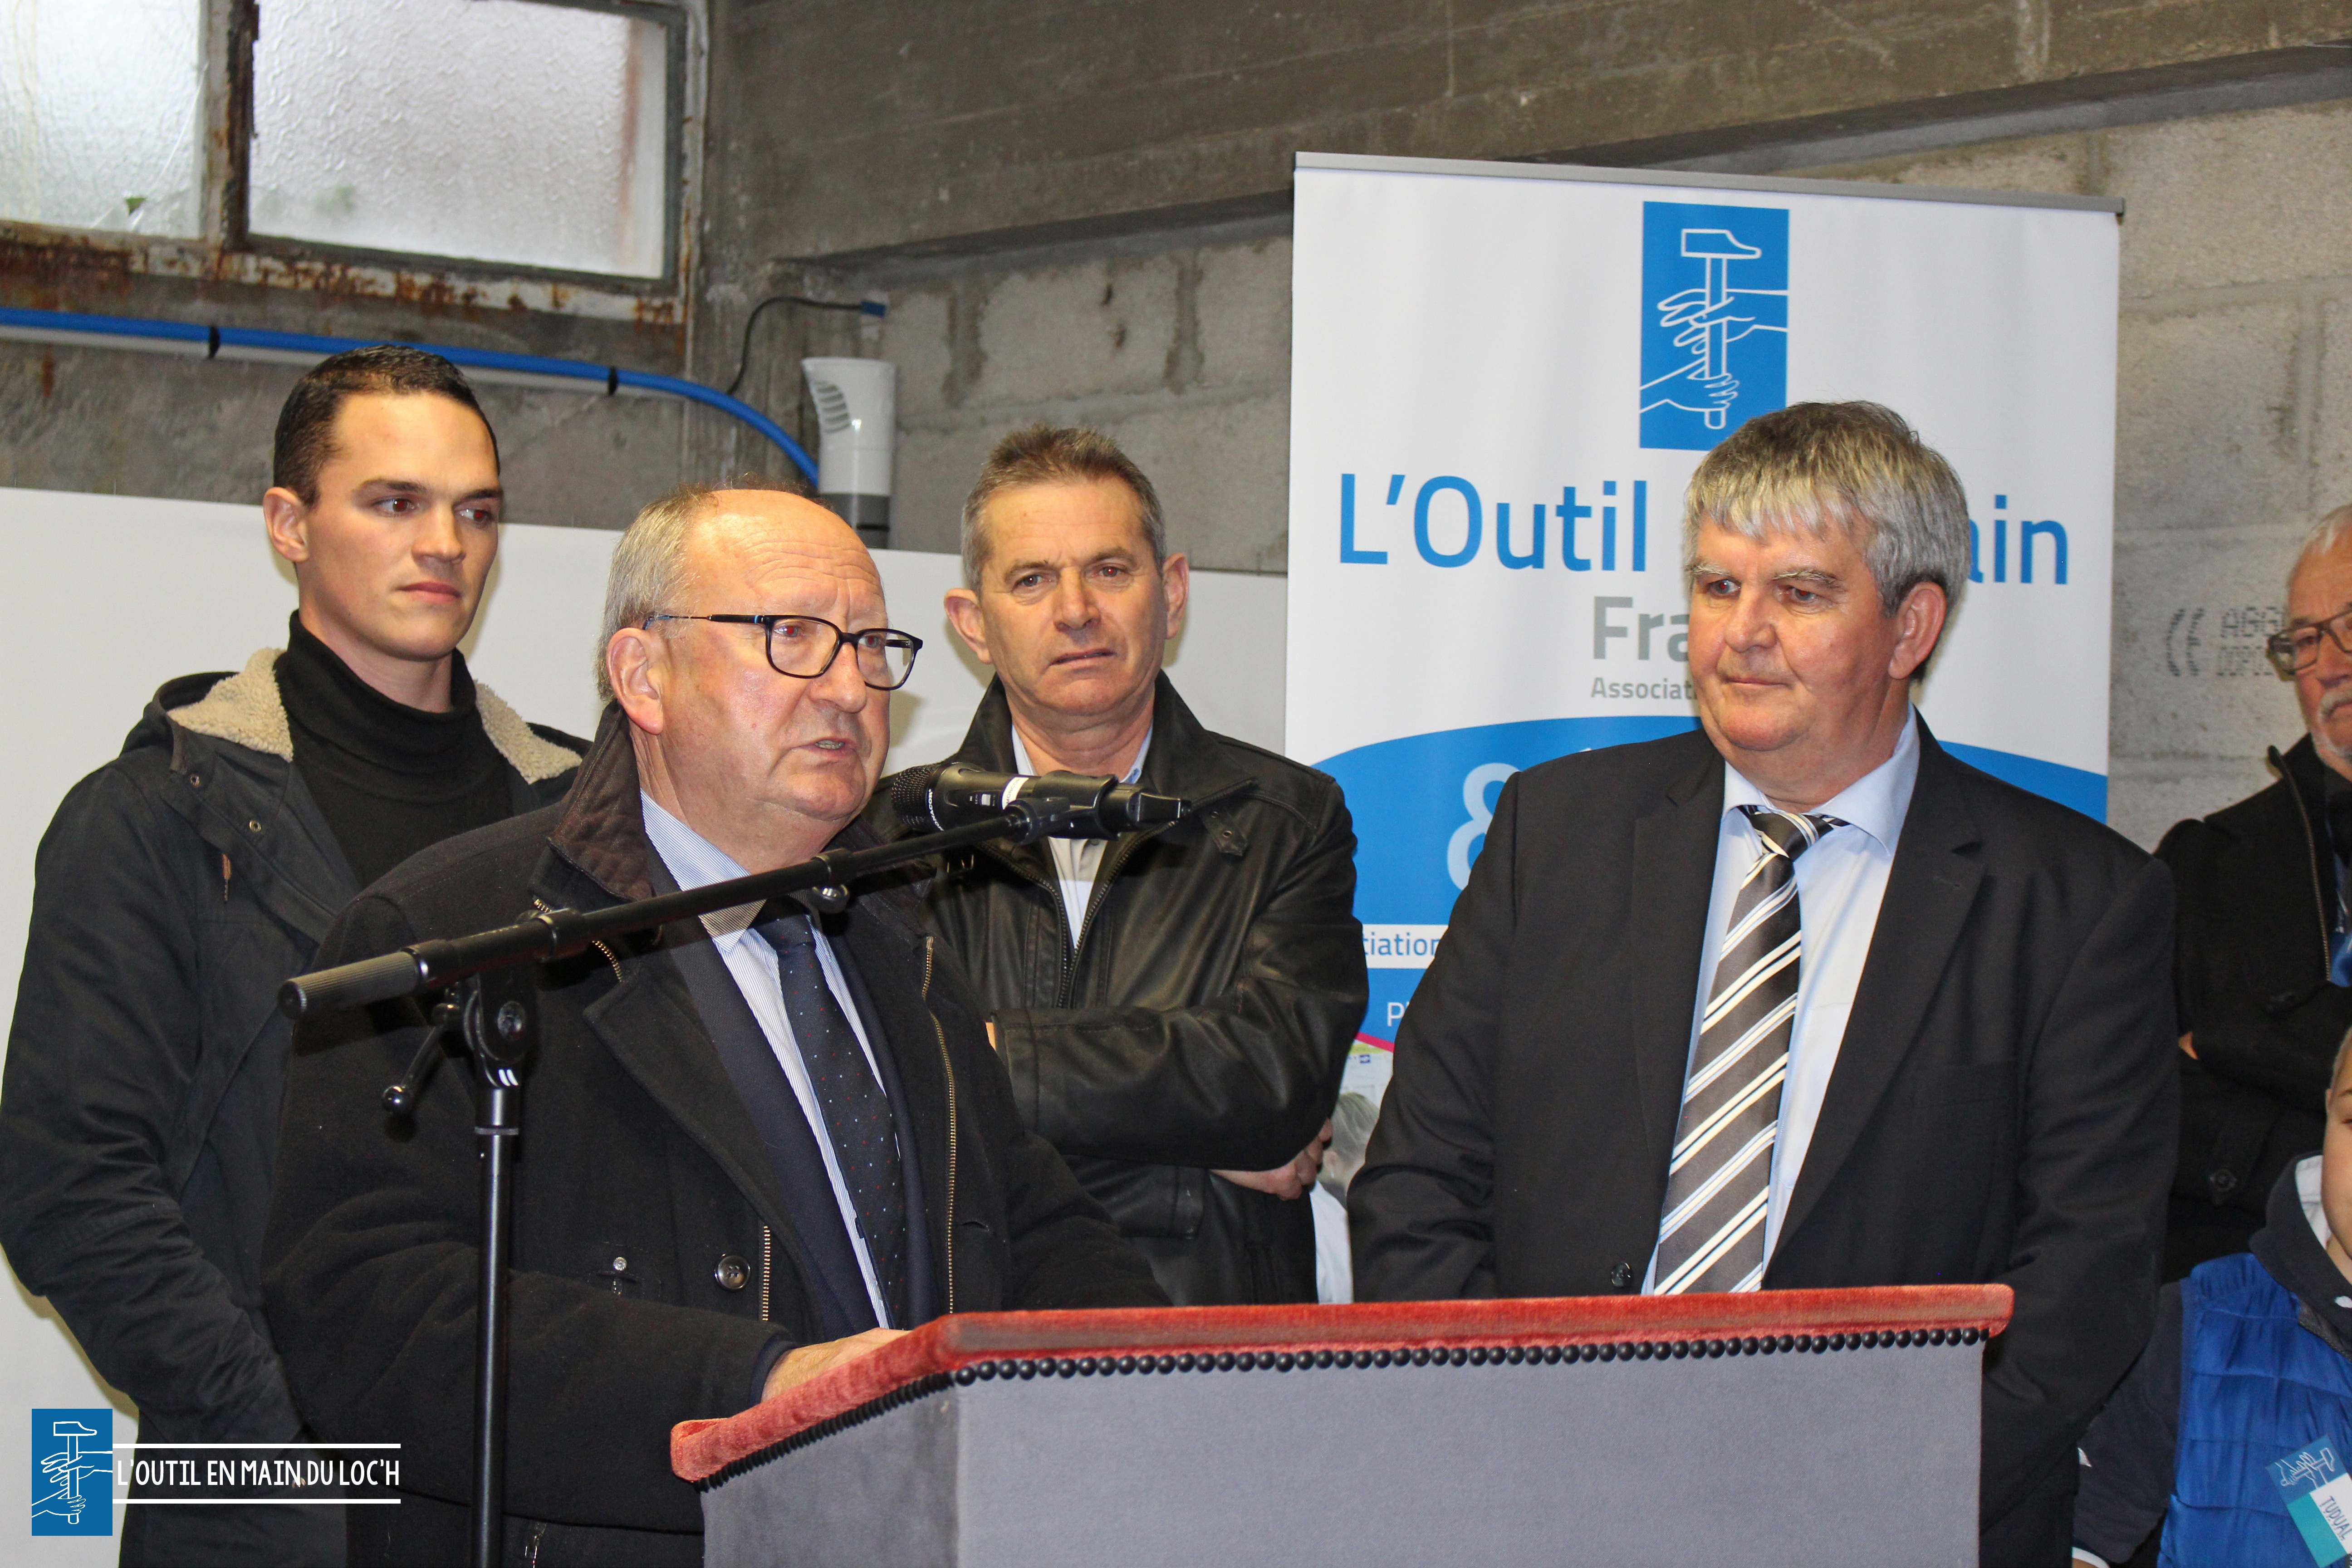 loutilenmainduloch-pierre-le-bodo-inauguration-outil-en-main-loch-grand-champ